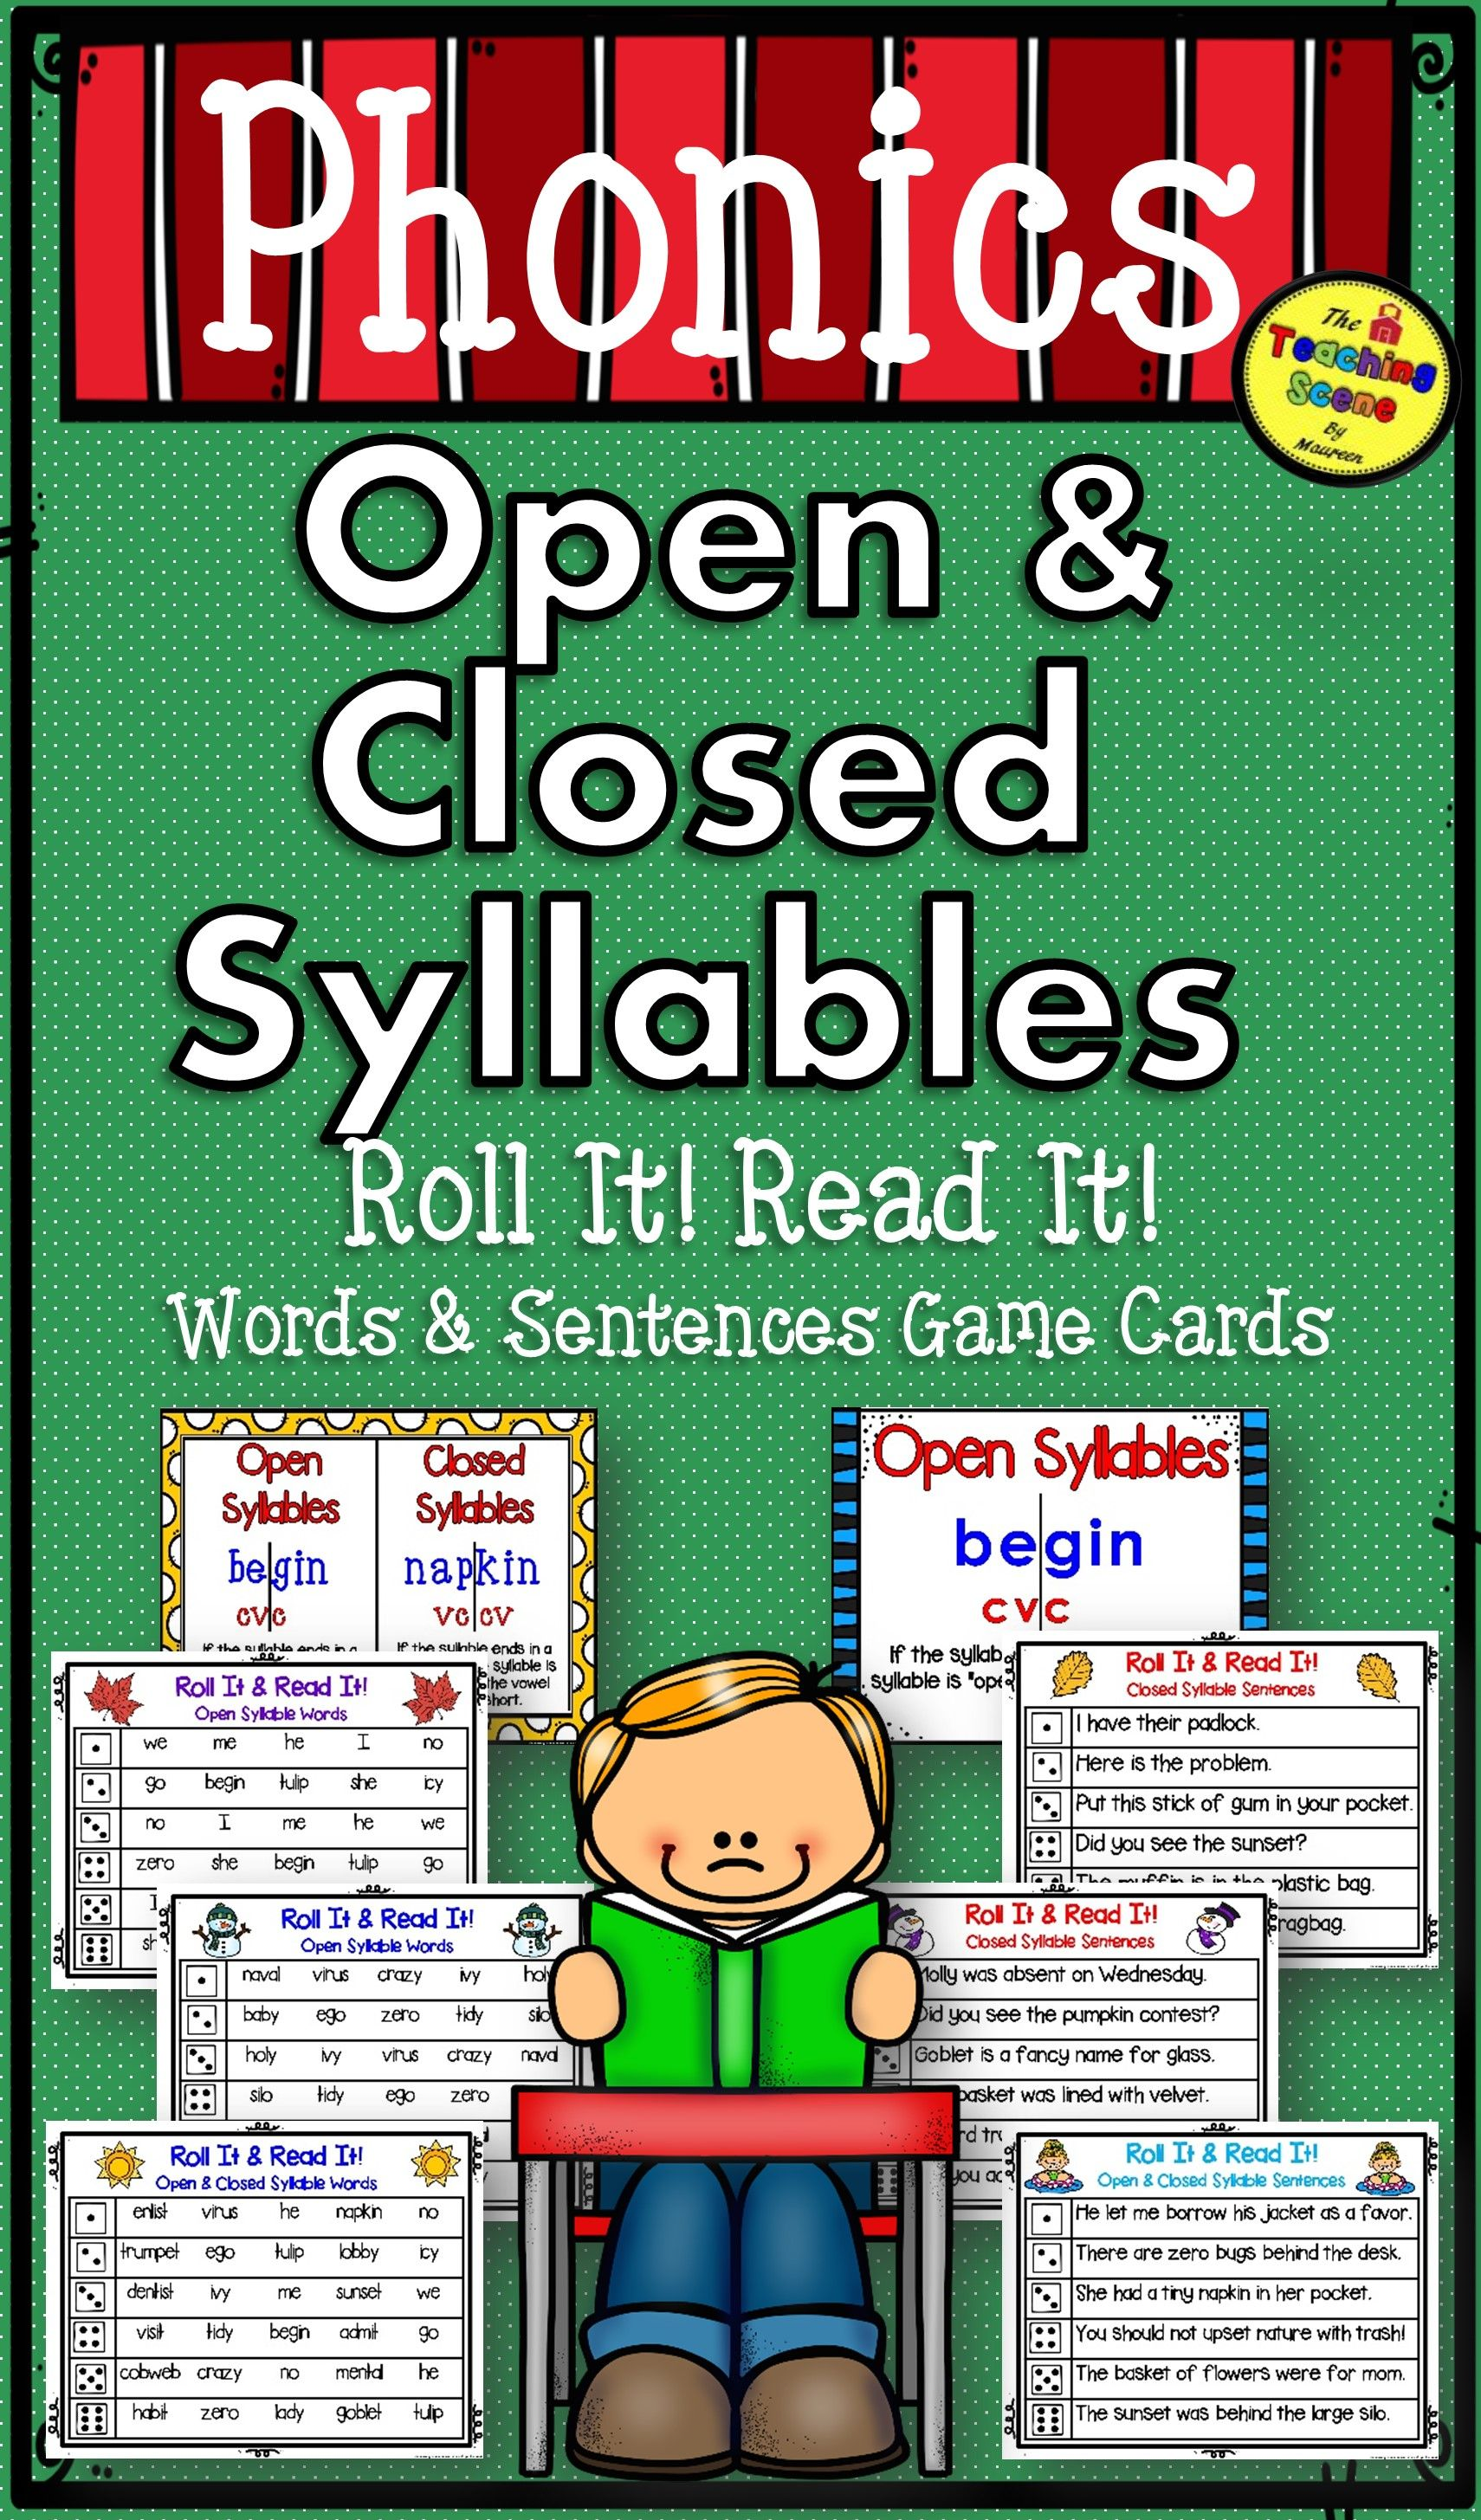 Open Amp Closed Syllables Roll It Read It Game Cards Plus